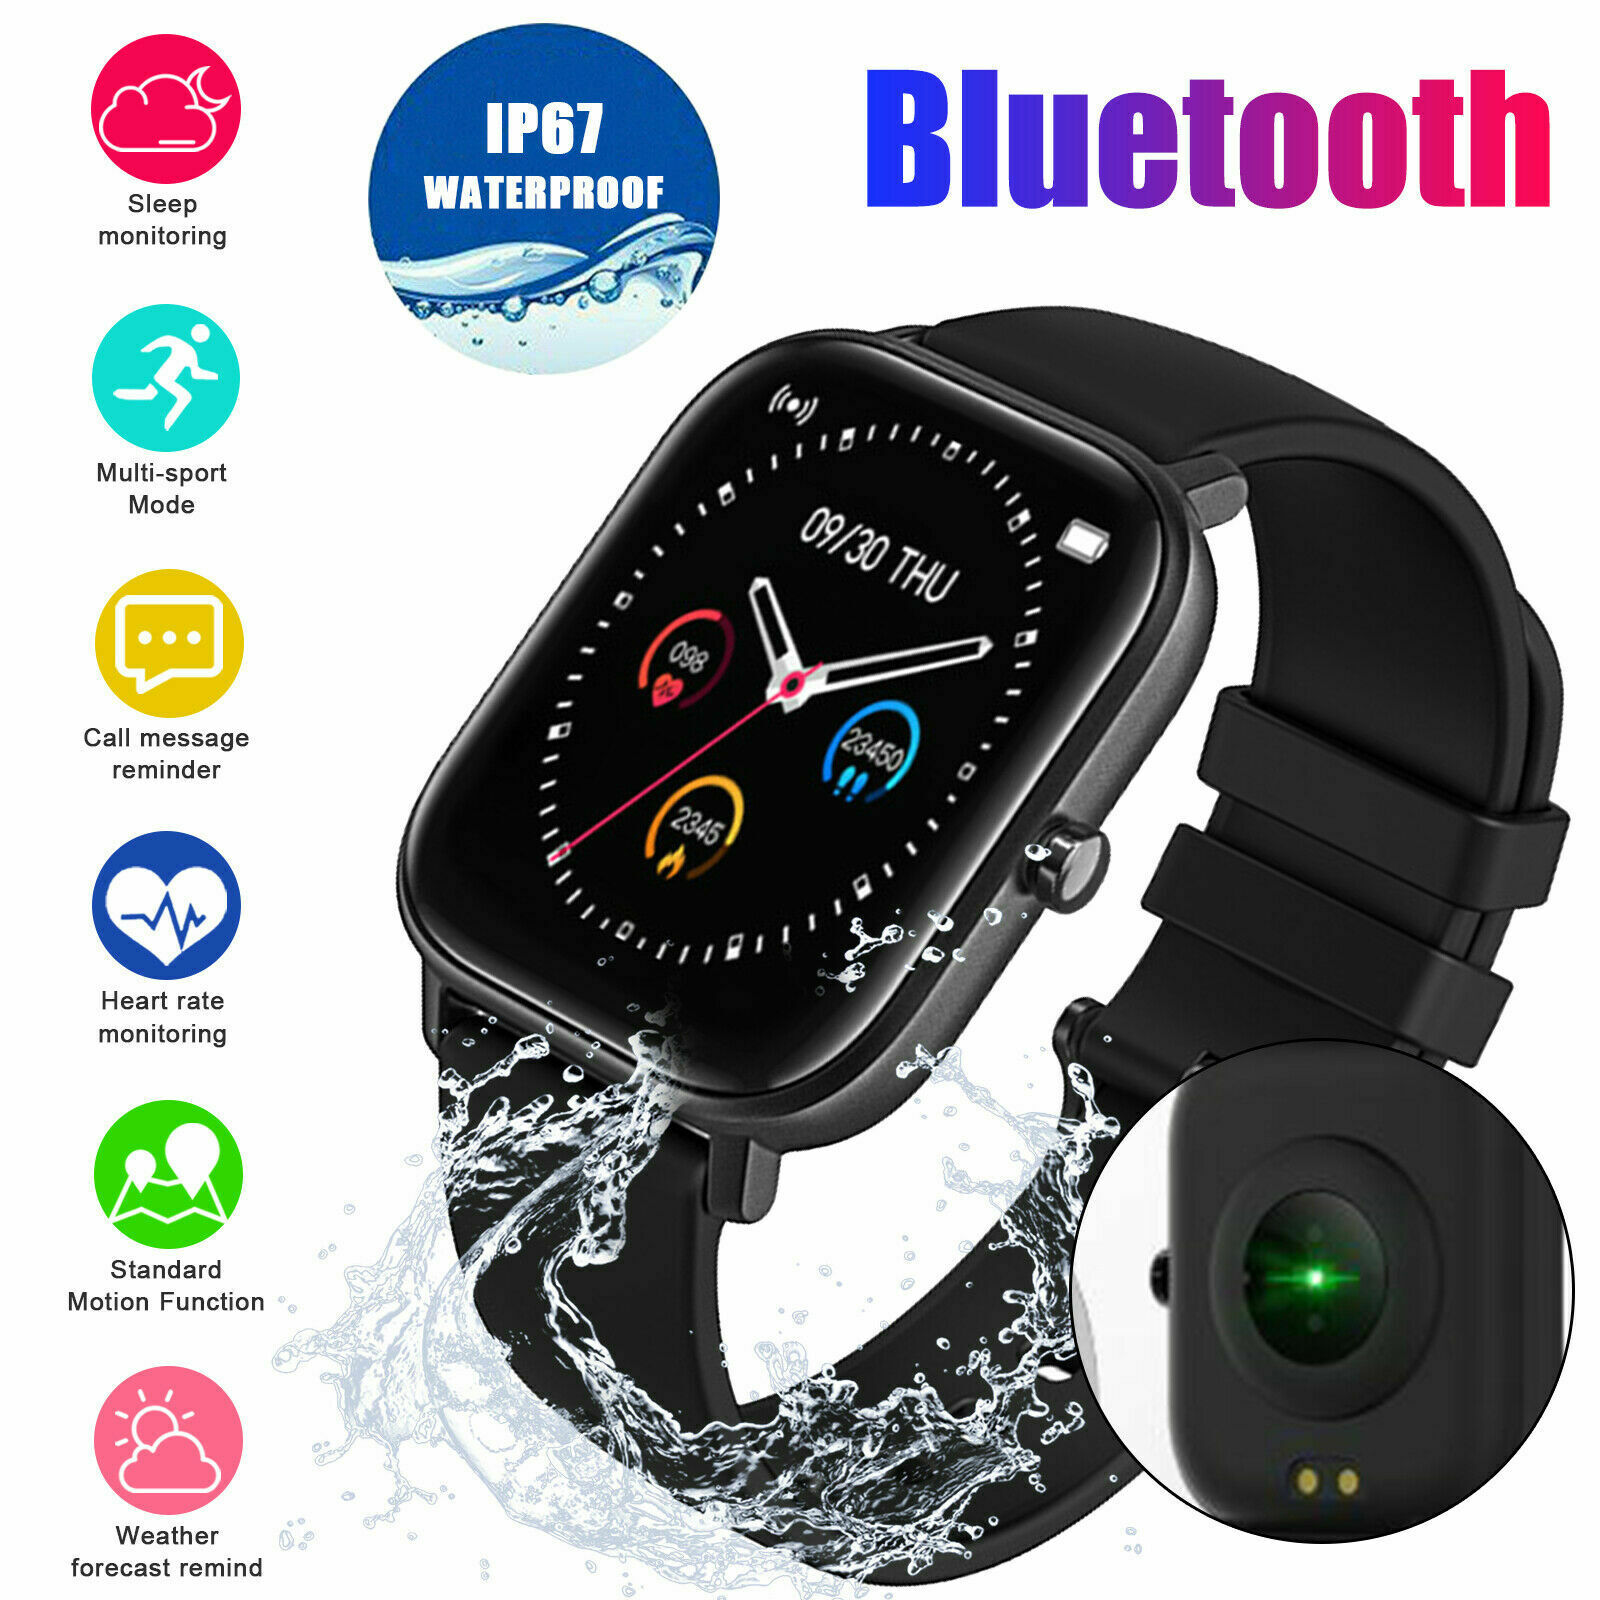 Waterproof Smart Watch Fitness Heart Rate Blood Pressure Monitor for iOS Android blood Featured fitness for heart monitor pressure rate smart watch waterproof